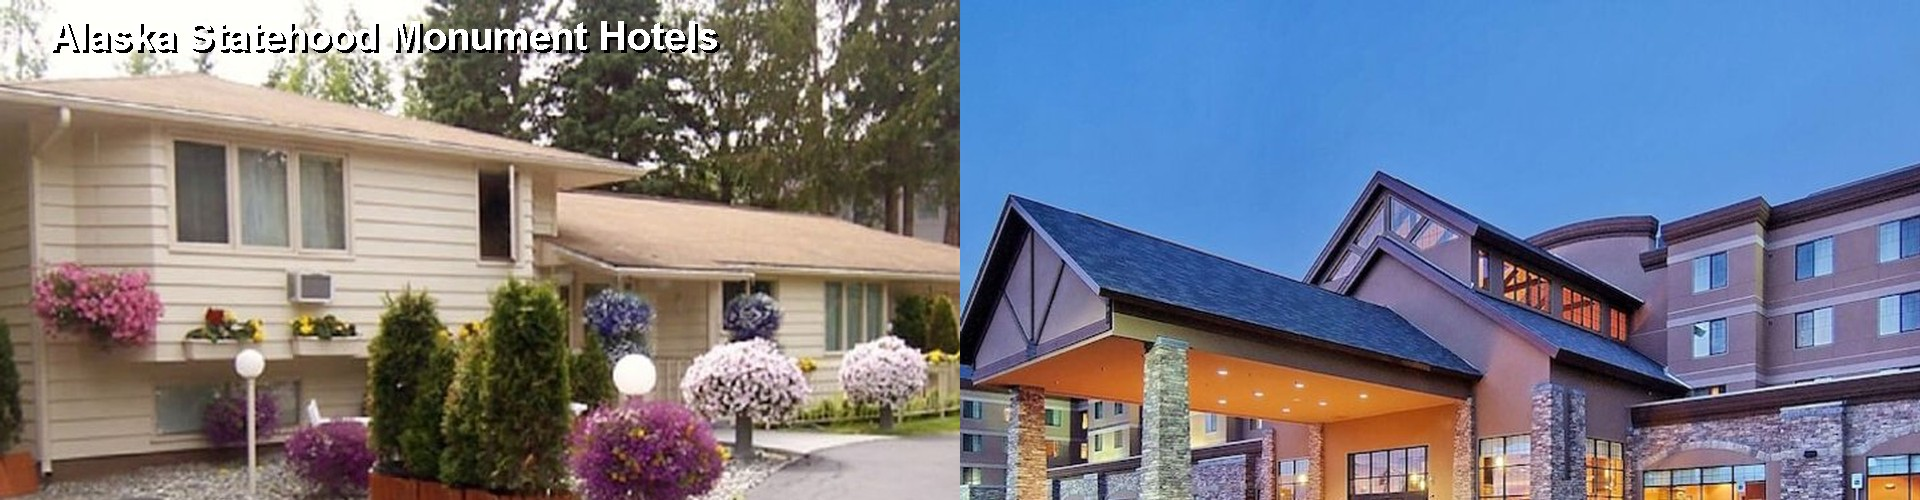 5 Best Hotels near Alaska Statehood Monument